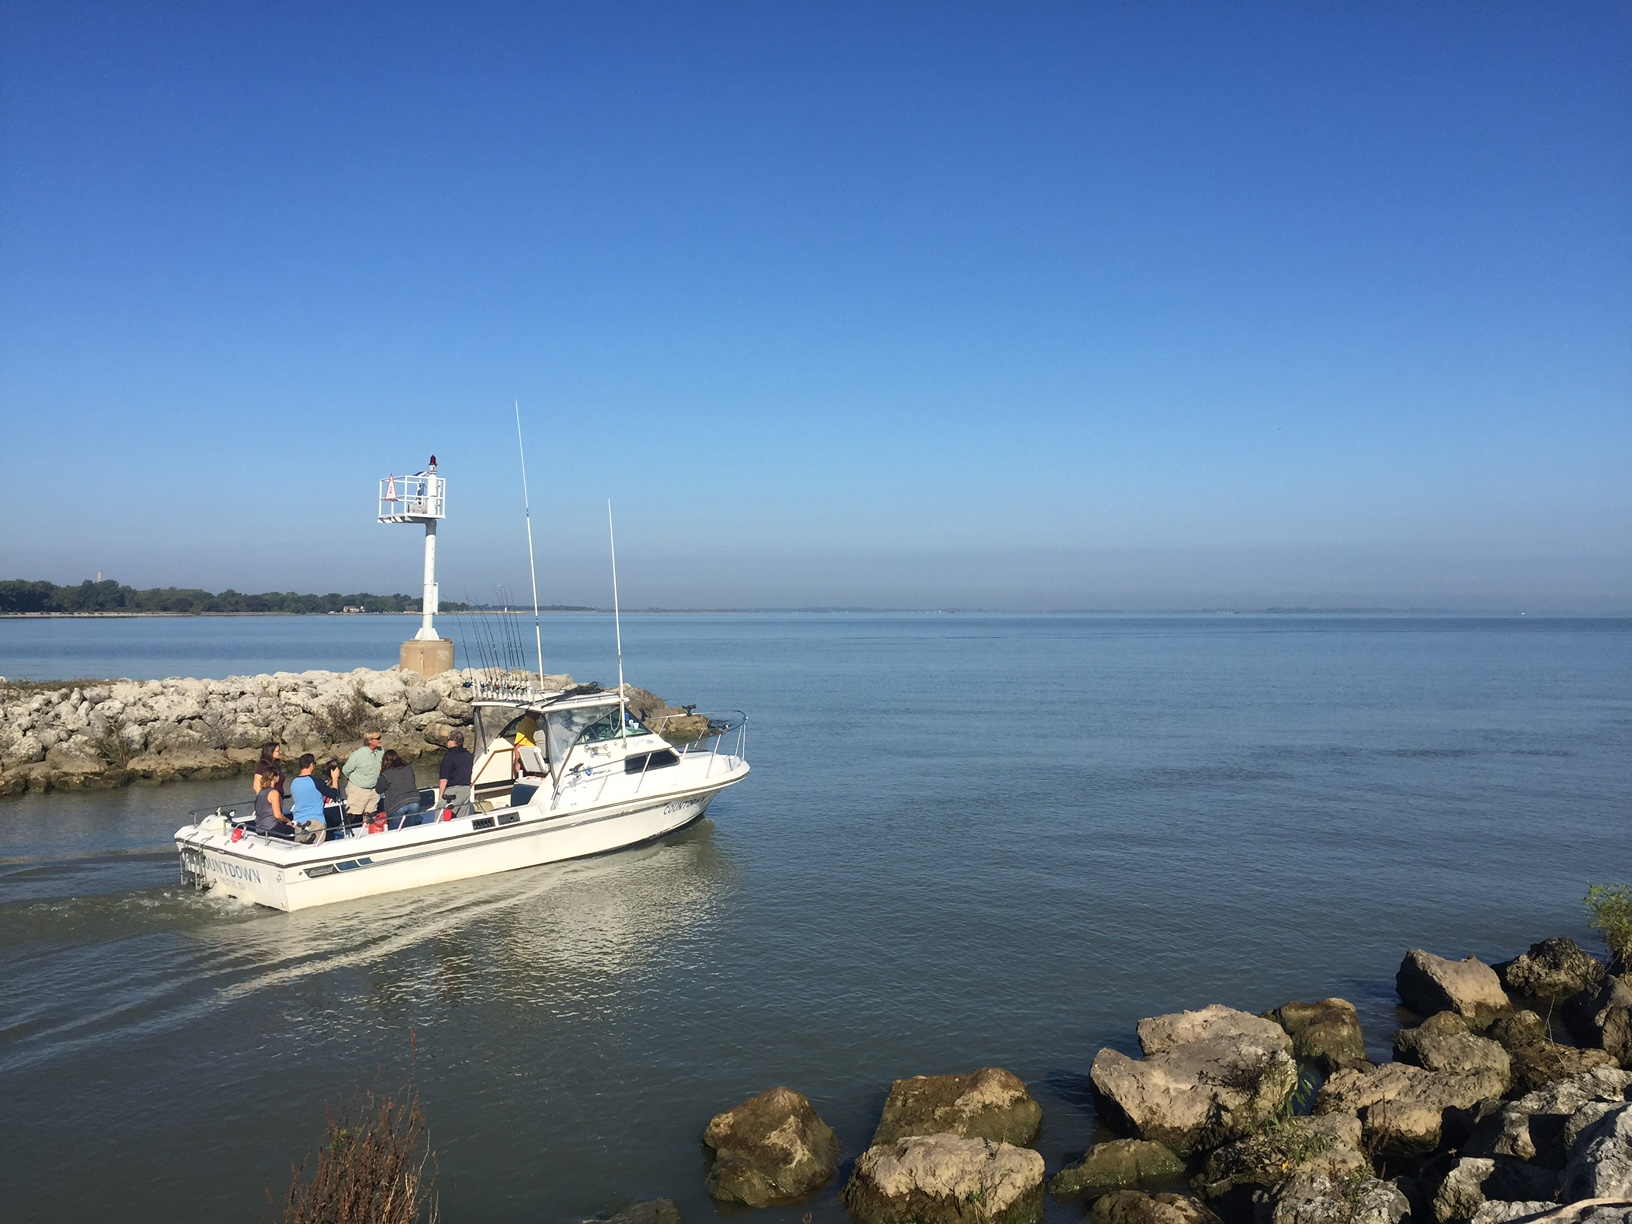 Portman's Bipartisan Senate Infrastructure Bill Invests $1 Billion for Great Lakes Restoration Over 5 Years